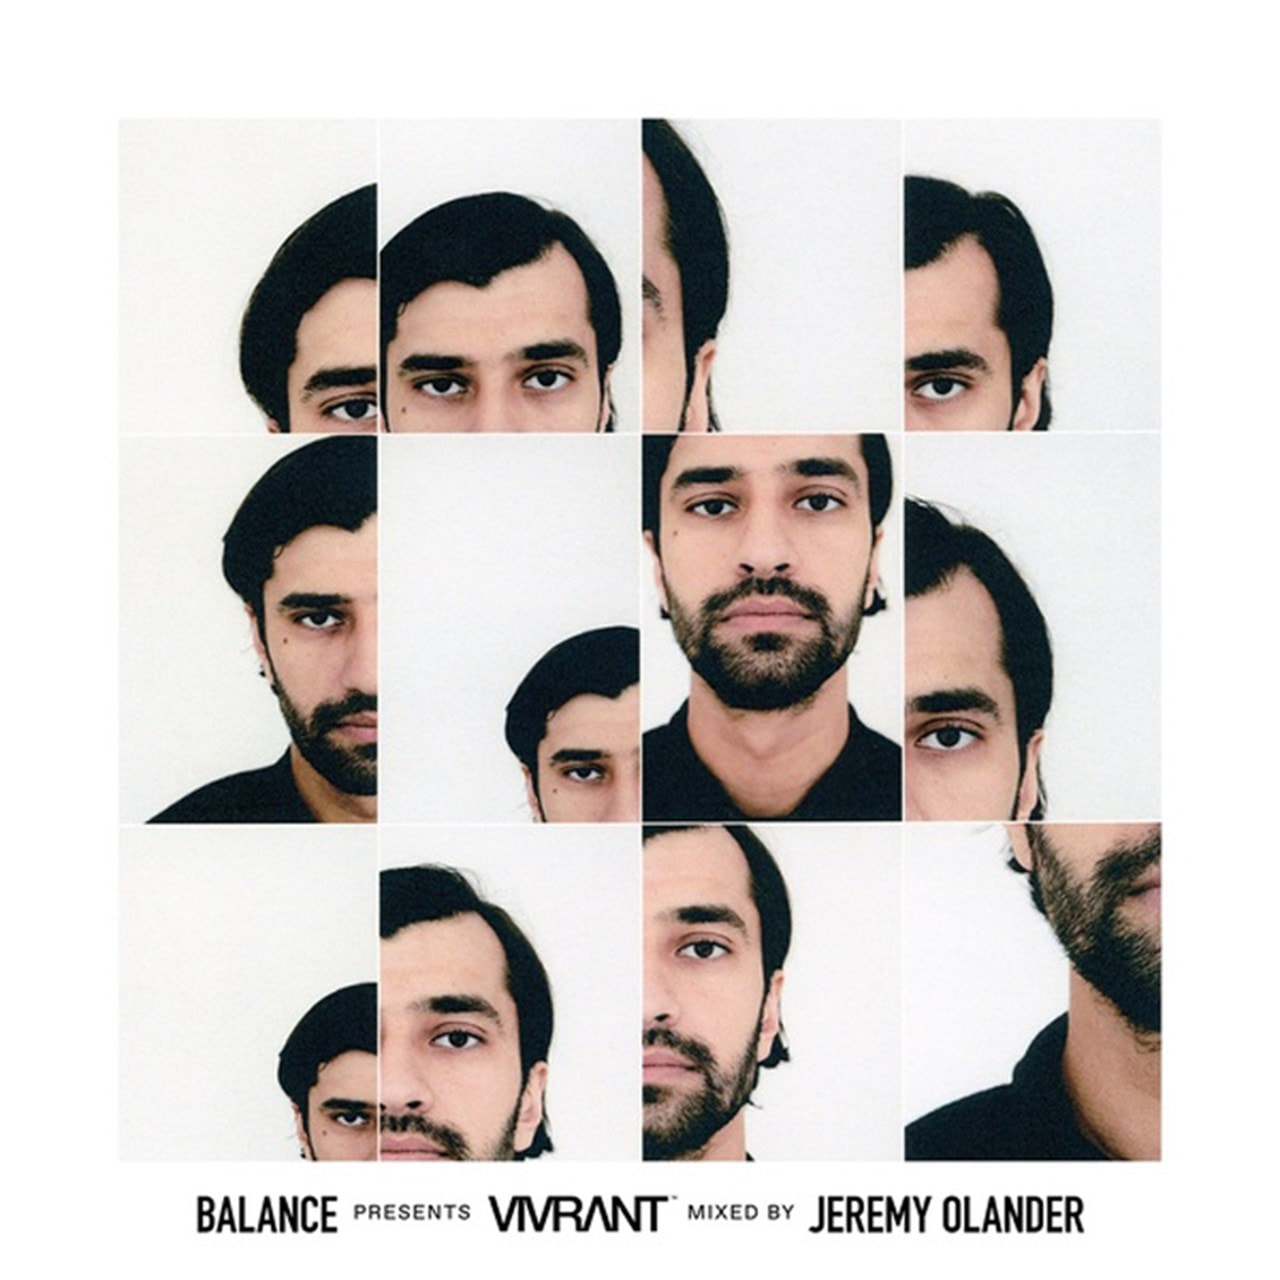 Balance Presents Vivrant: Mixed By Jeremy Olander - 1